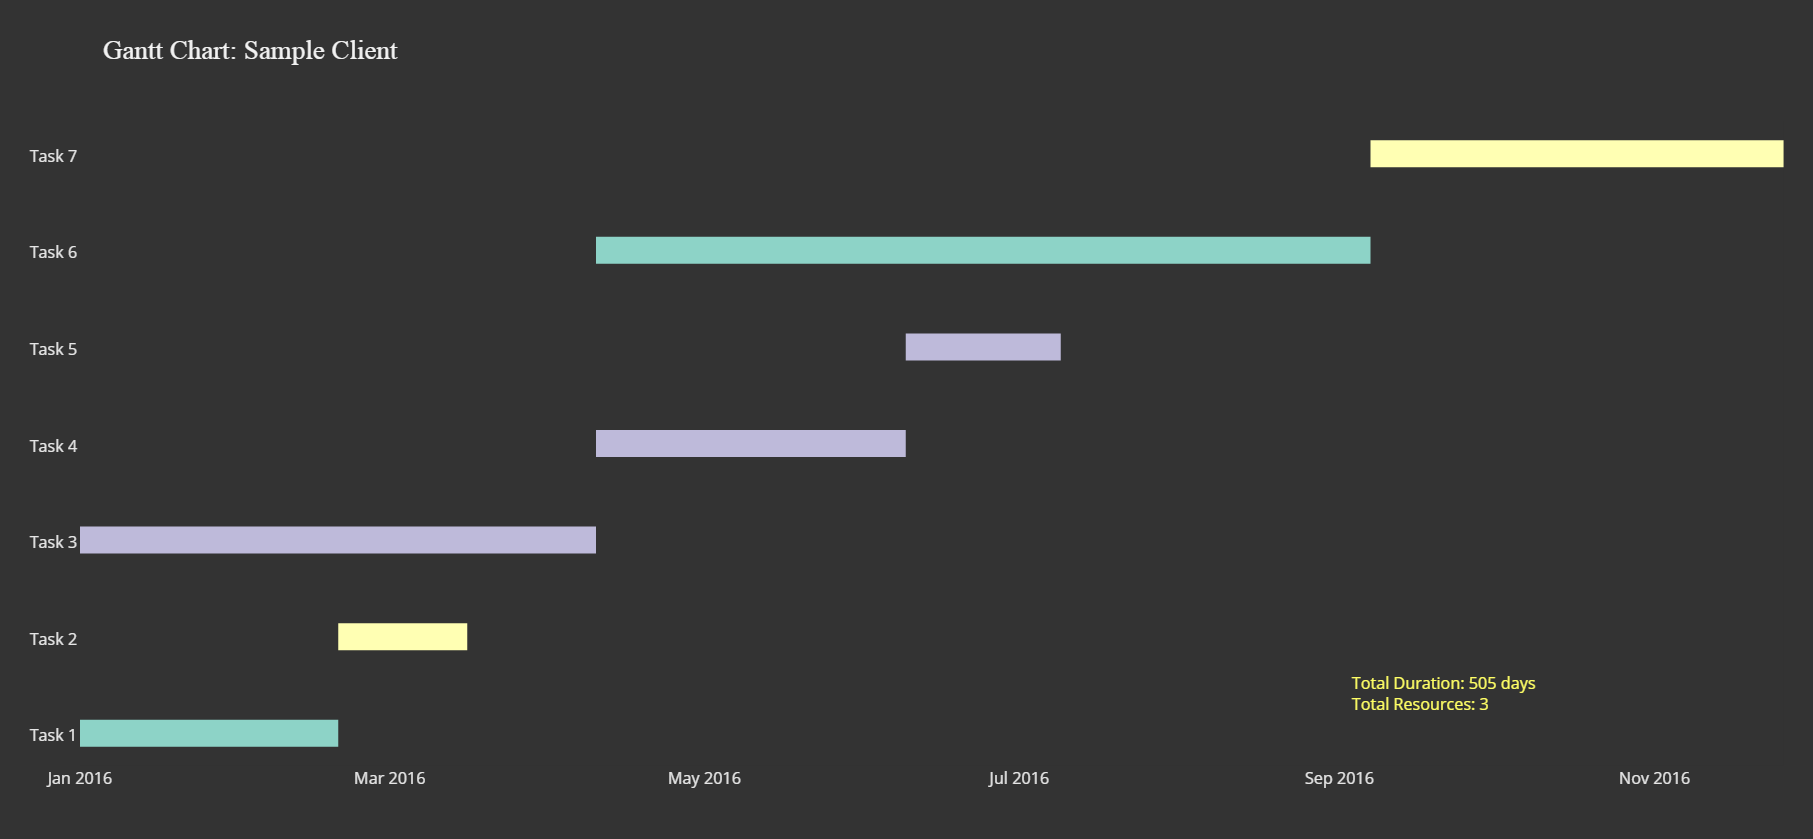 Gantt Charts In R Using Plotly R Bloggers